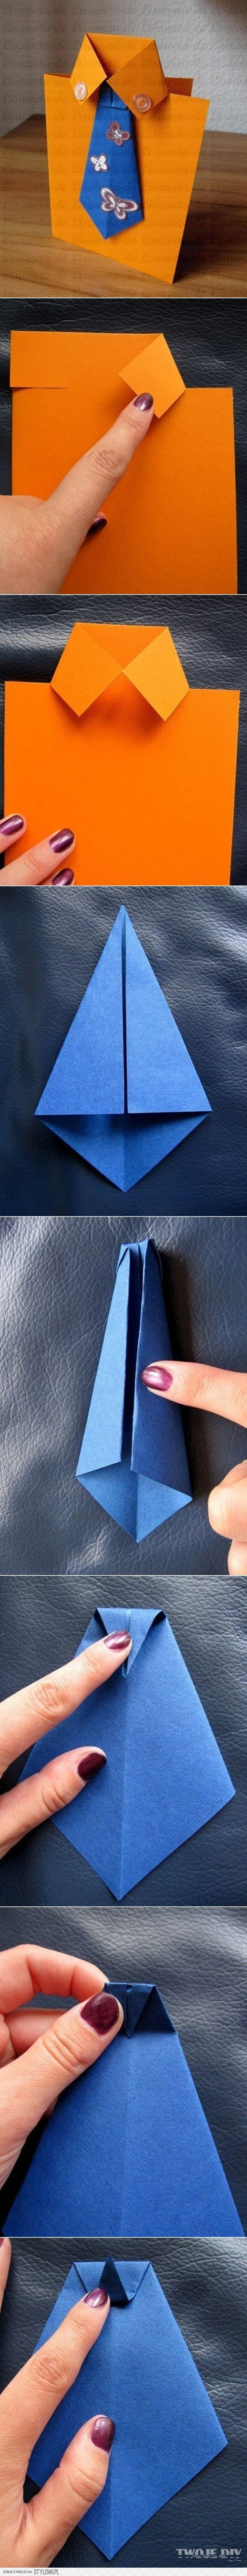 Necktie Card - DIY Father's Day Cards Your Kids Can Make